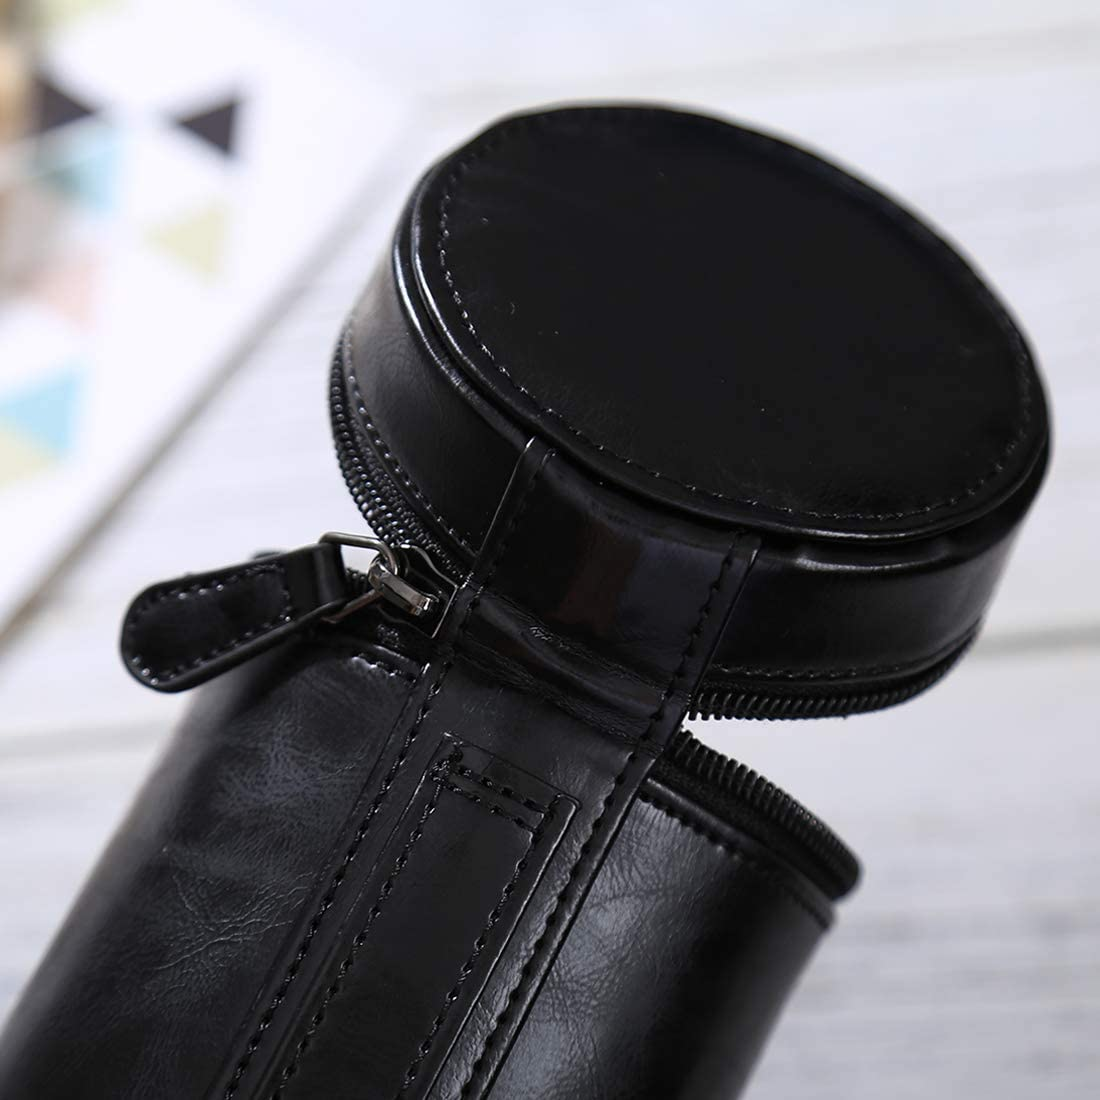 Size XIAOMIN Medium Lens Case Zippered PU Leather Pouch Box for DSLR Camera Lens Color : Black 13x9x9cm Premium Material